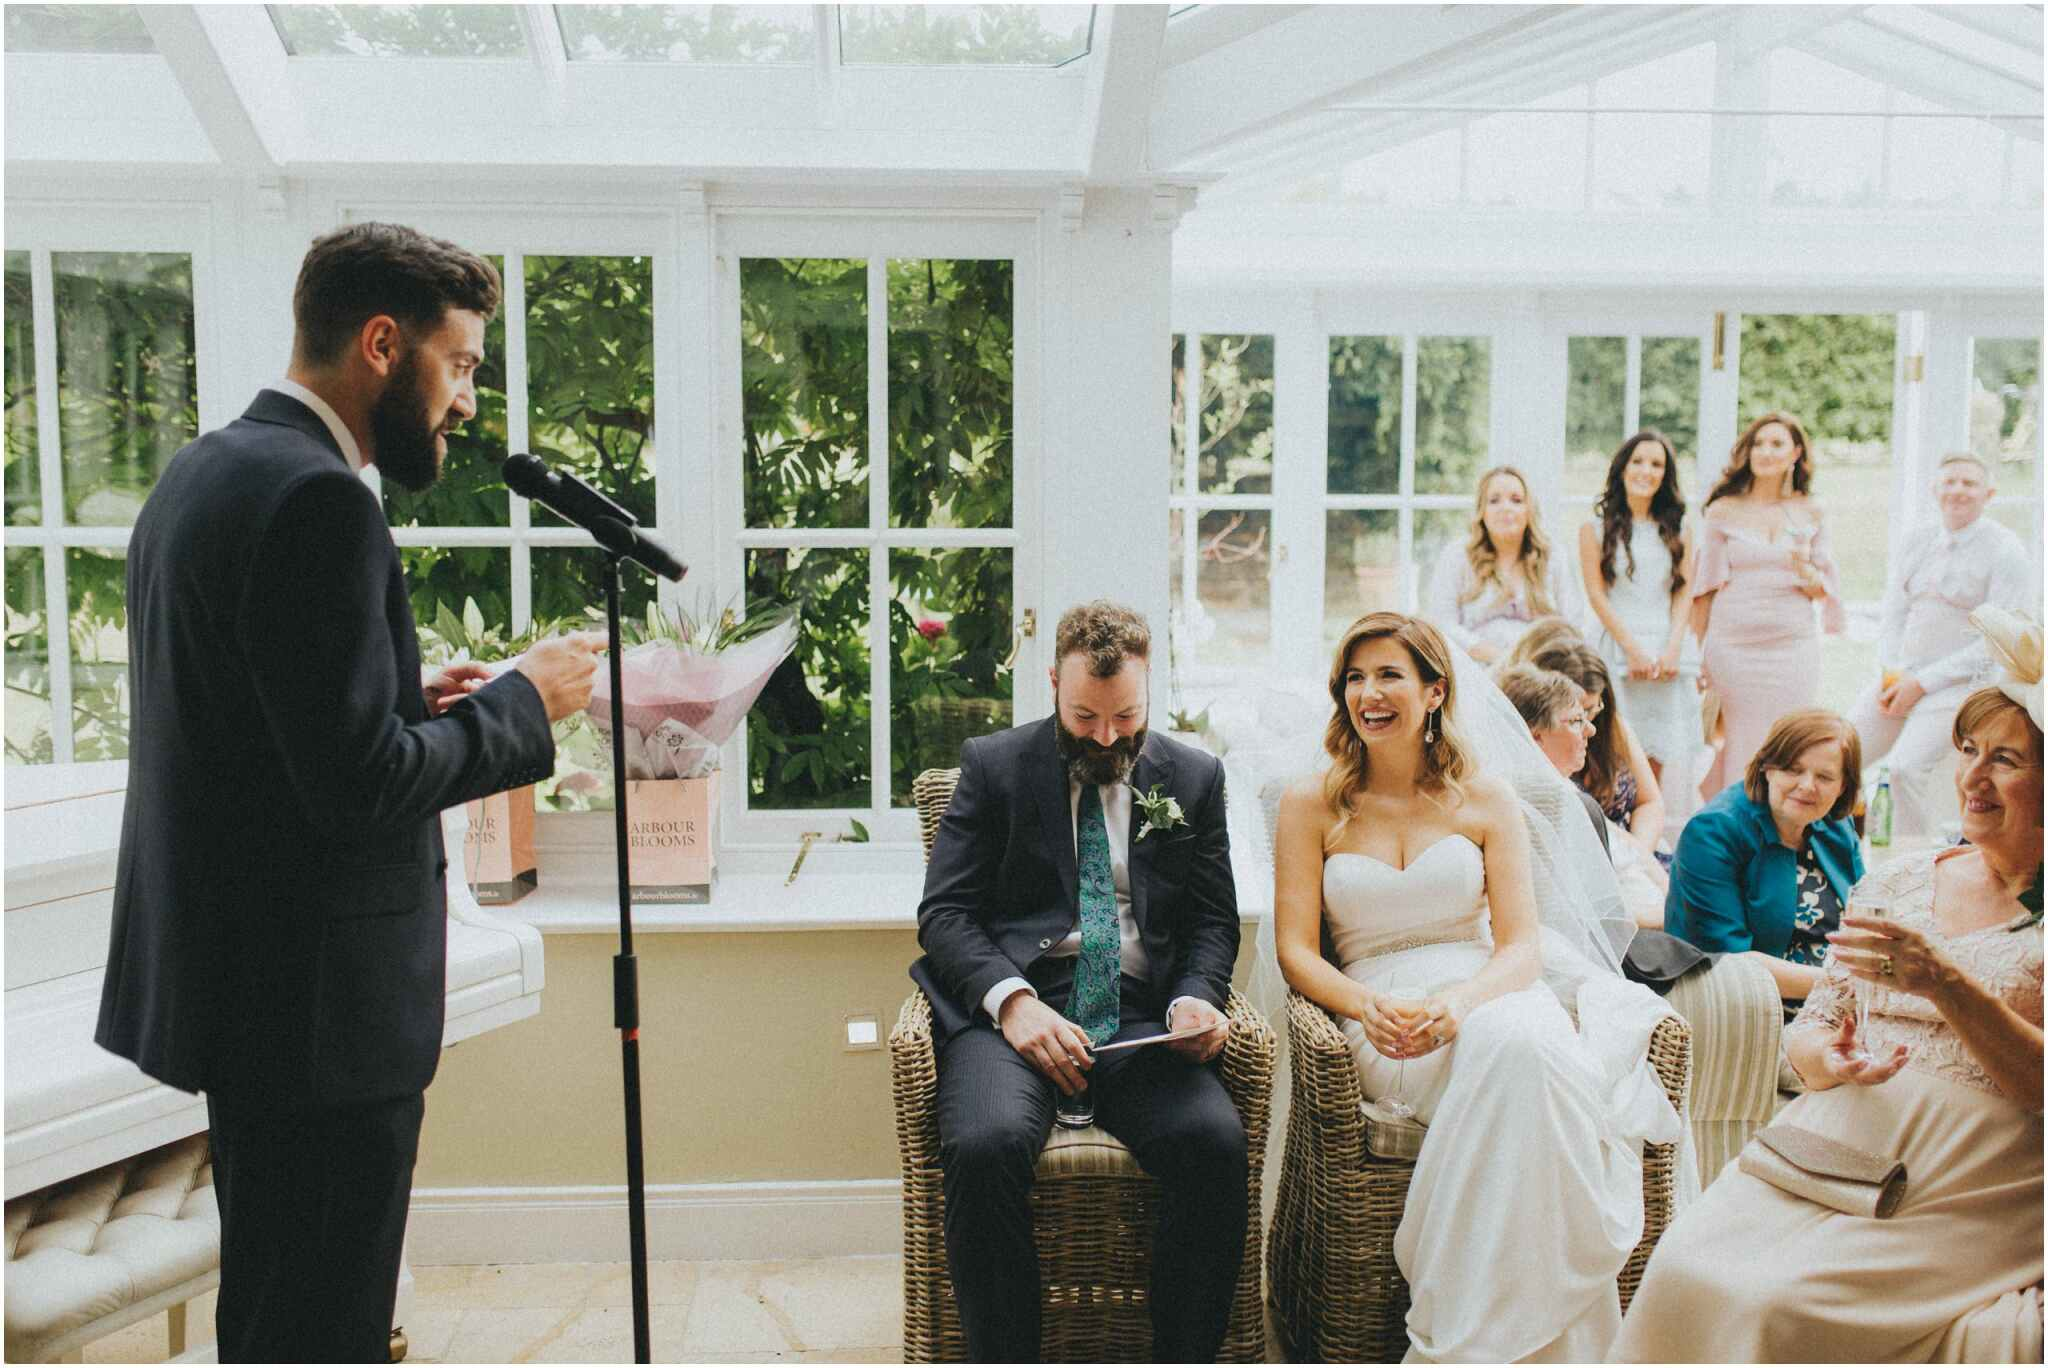 ballymagarvey village wedding 00107 - Fun and Relaxed wedding and elopement photography in Ireland, perfect for adventurous and outdoorsy couples